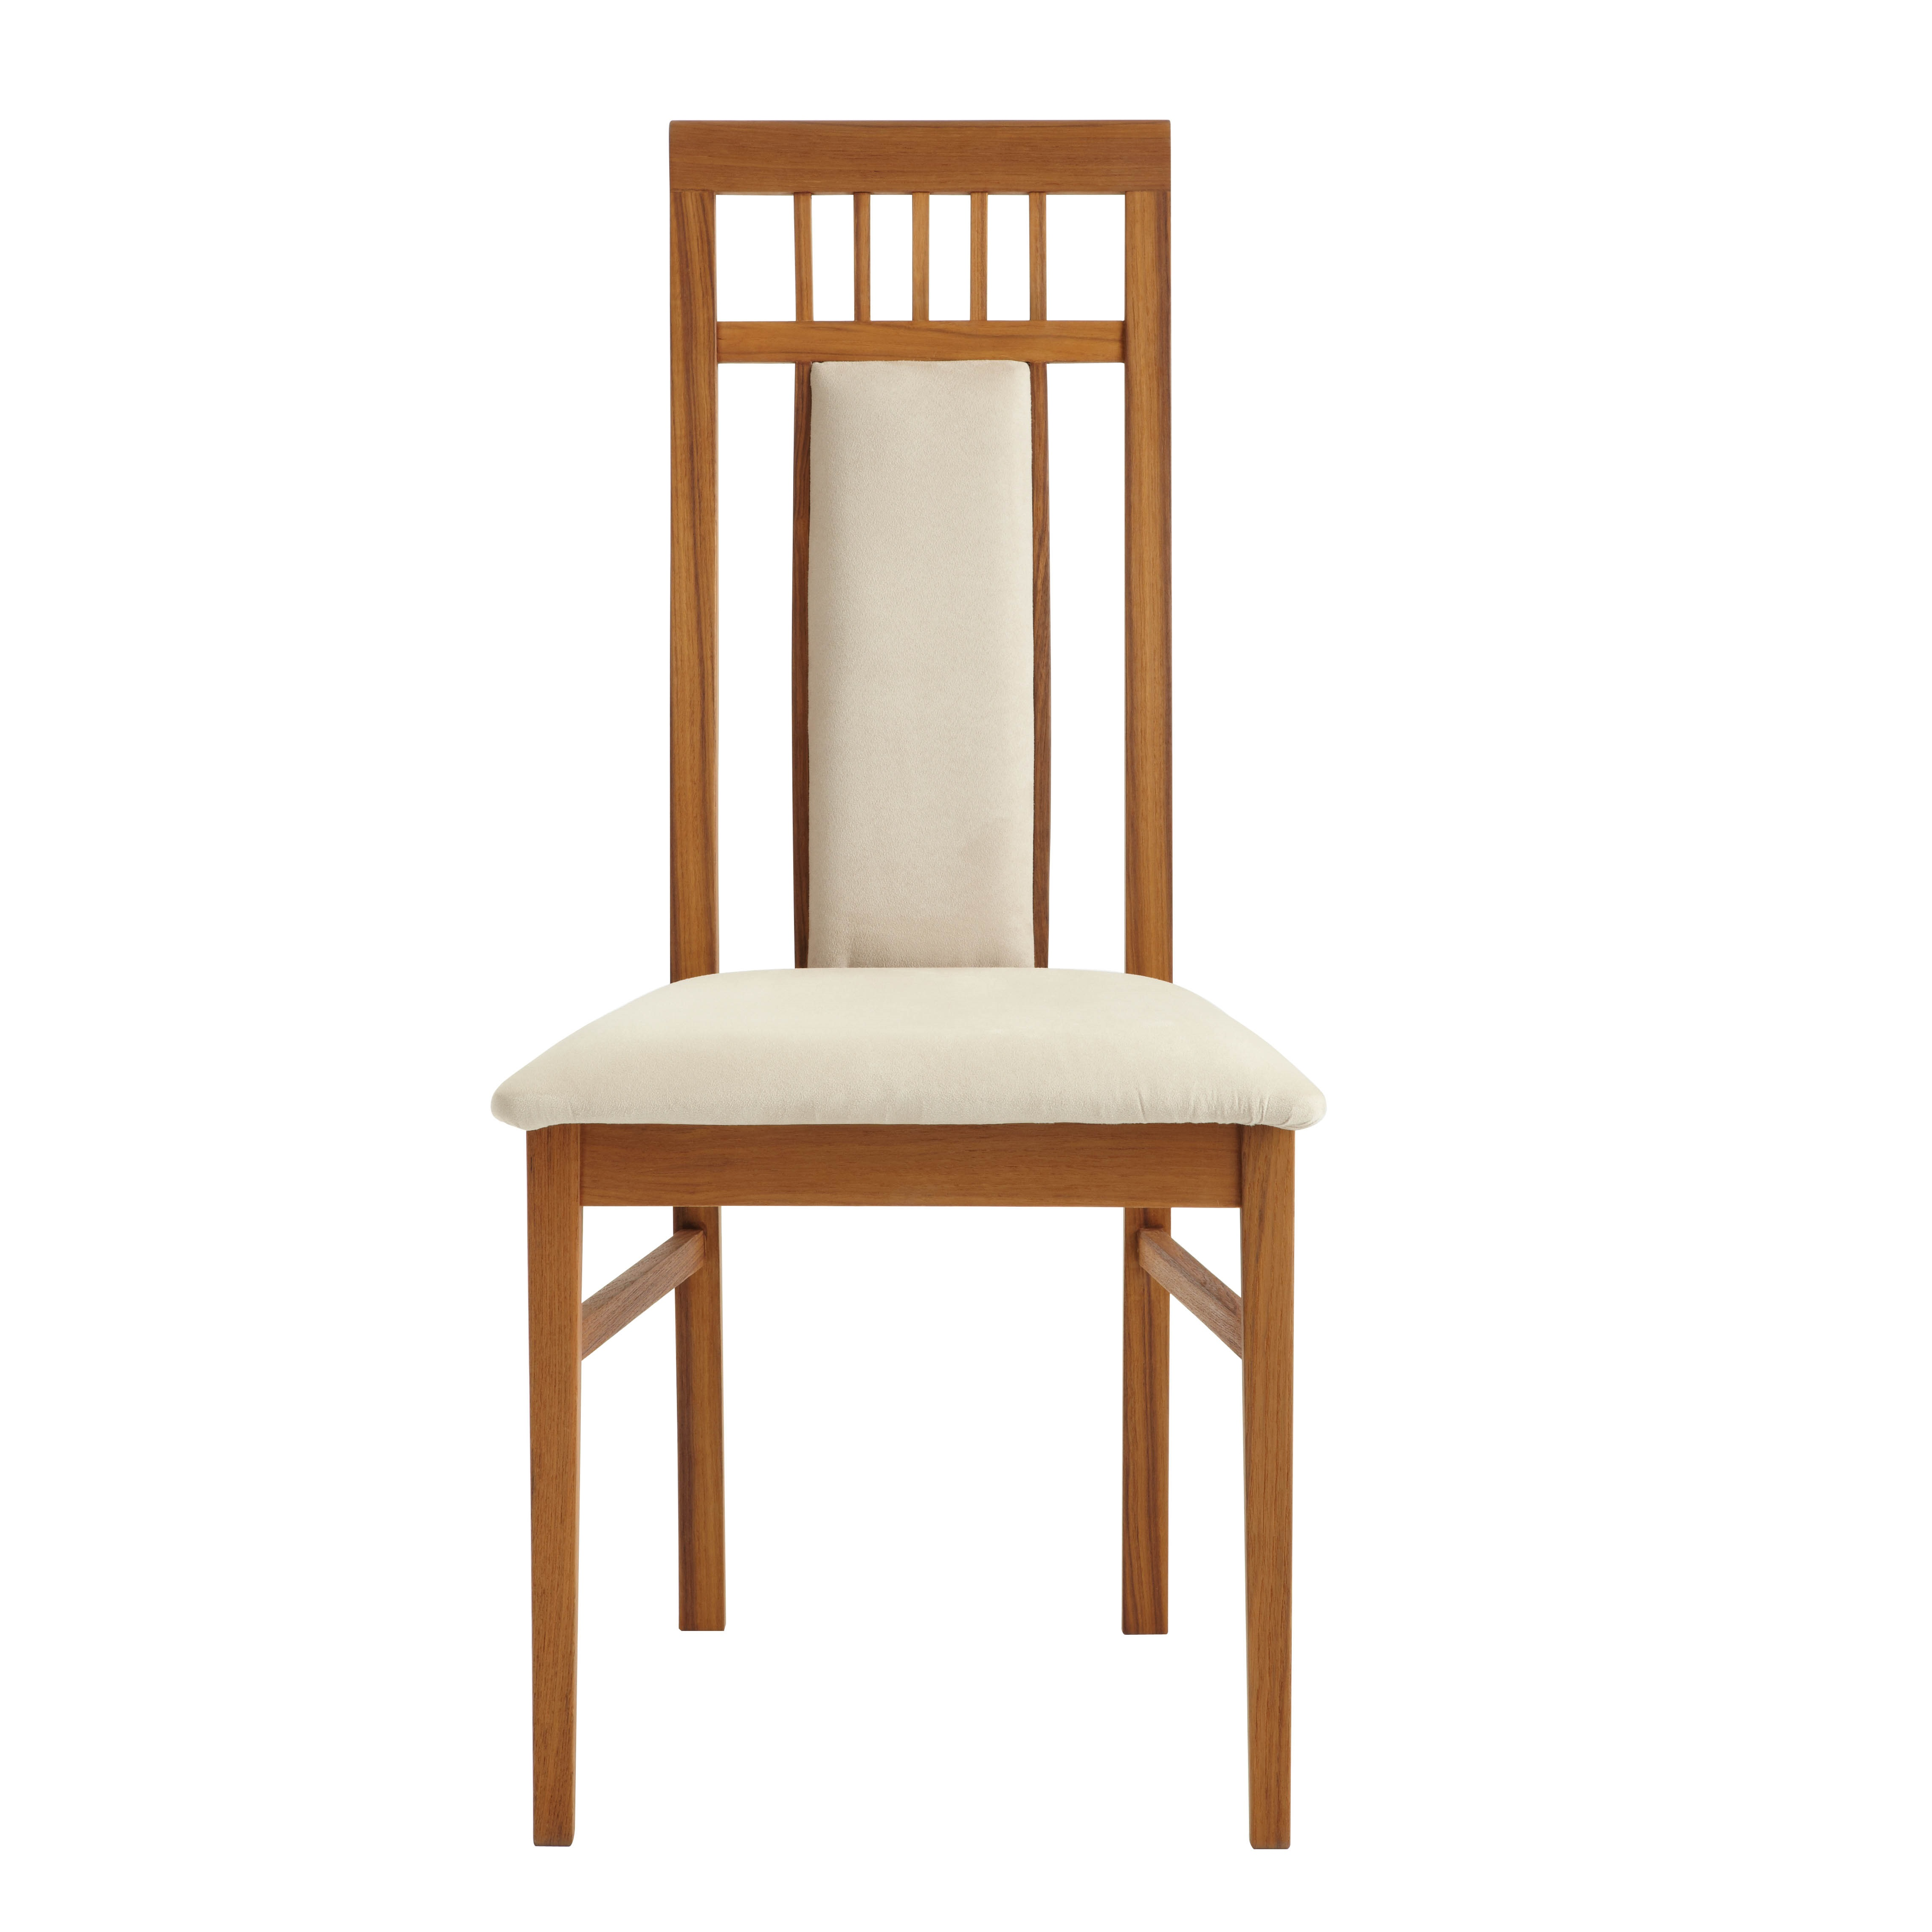 Danish Furniture St Louis 1017 Classic Teak Dining Chair House Of Denmark House Of